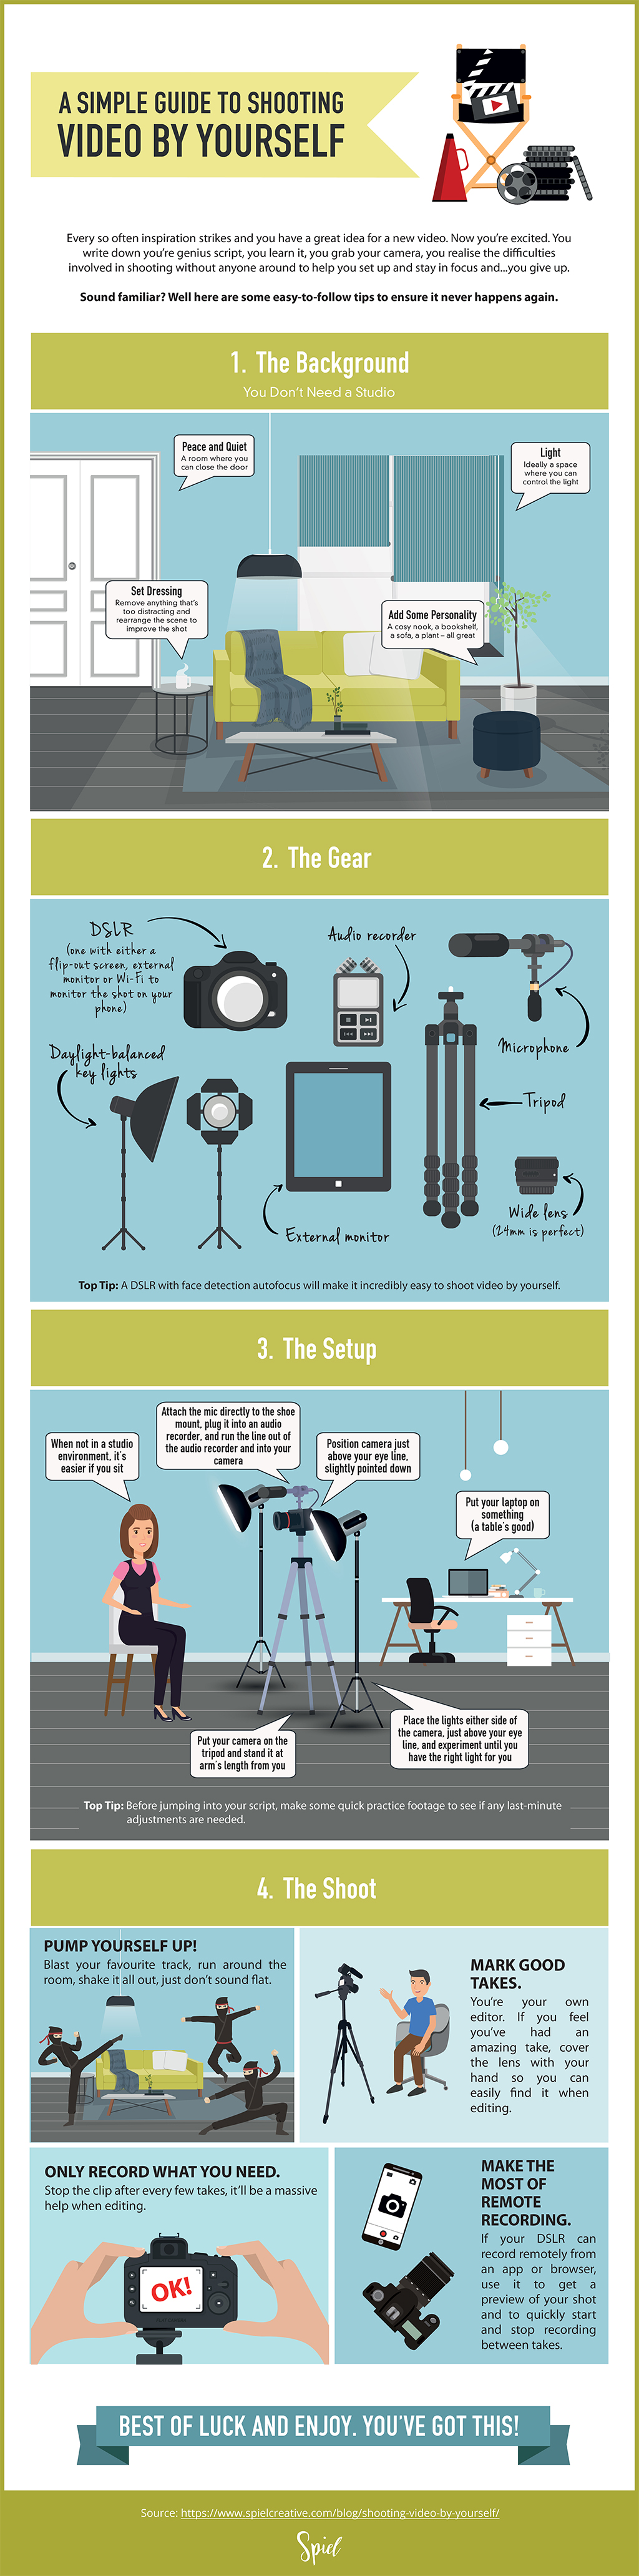 A Simple Guide to Shooting Video by Yourself - Infographic